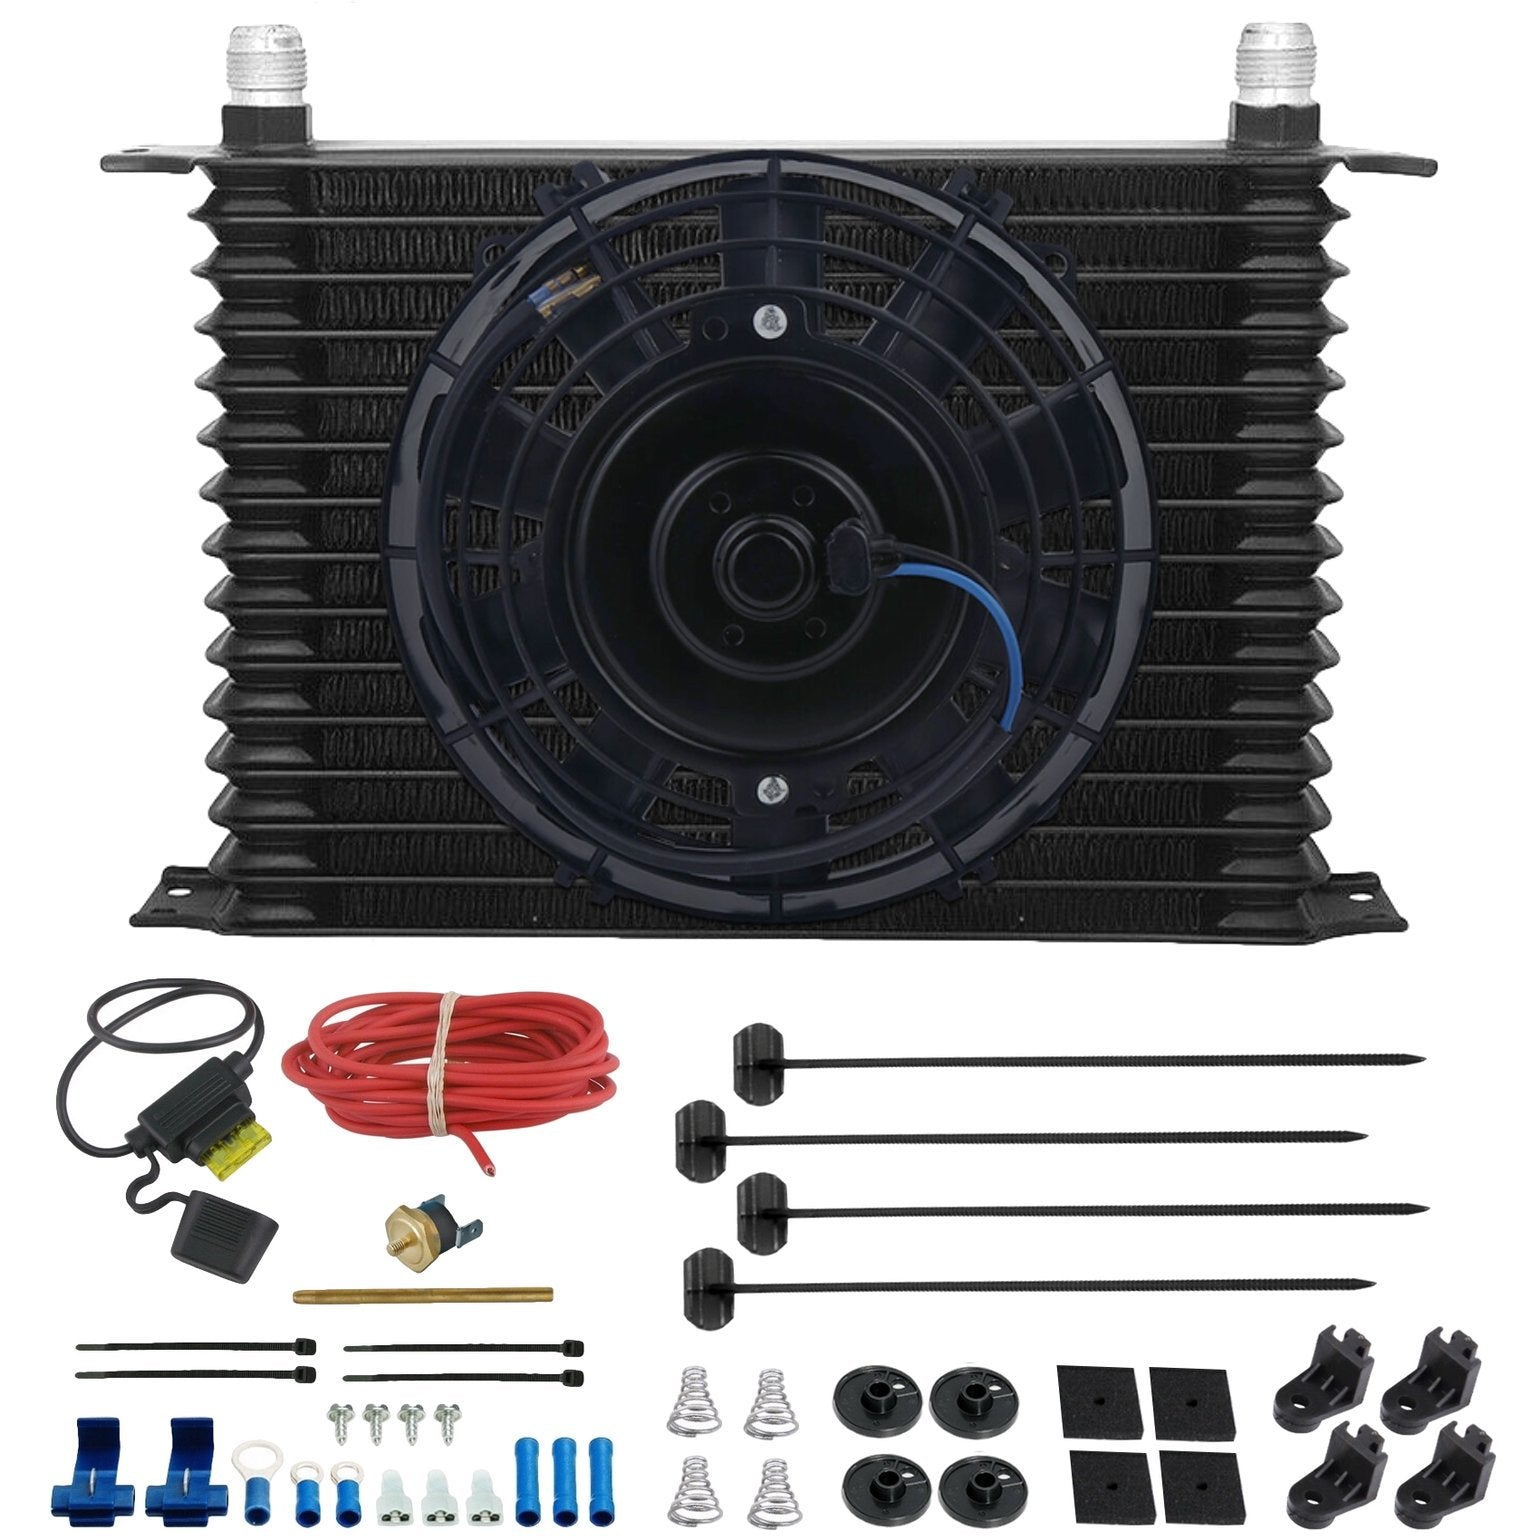 "15 Row Engine Transmission Oil Cooler 8"" Inch Electric Cooling Fan Fin Thermostat Temperature Switch Kit-Oil Cooler-American Volt-10AN-3"" Inch-140'F On - 125'F Off-American Volt"